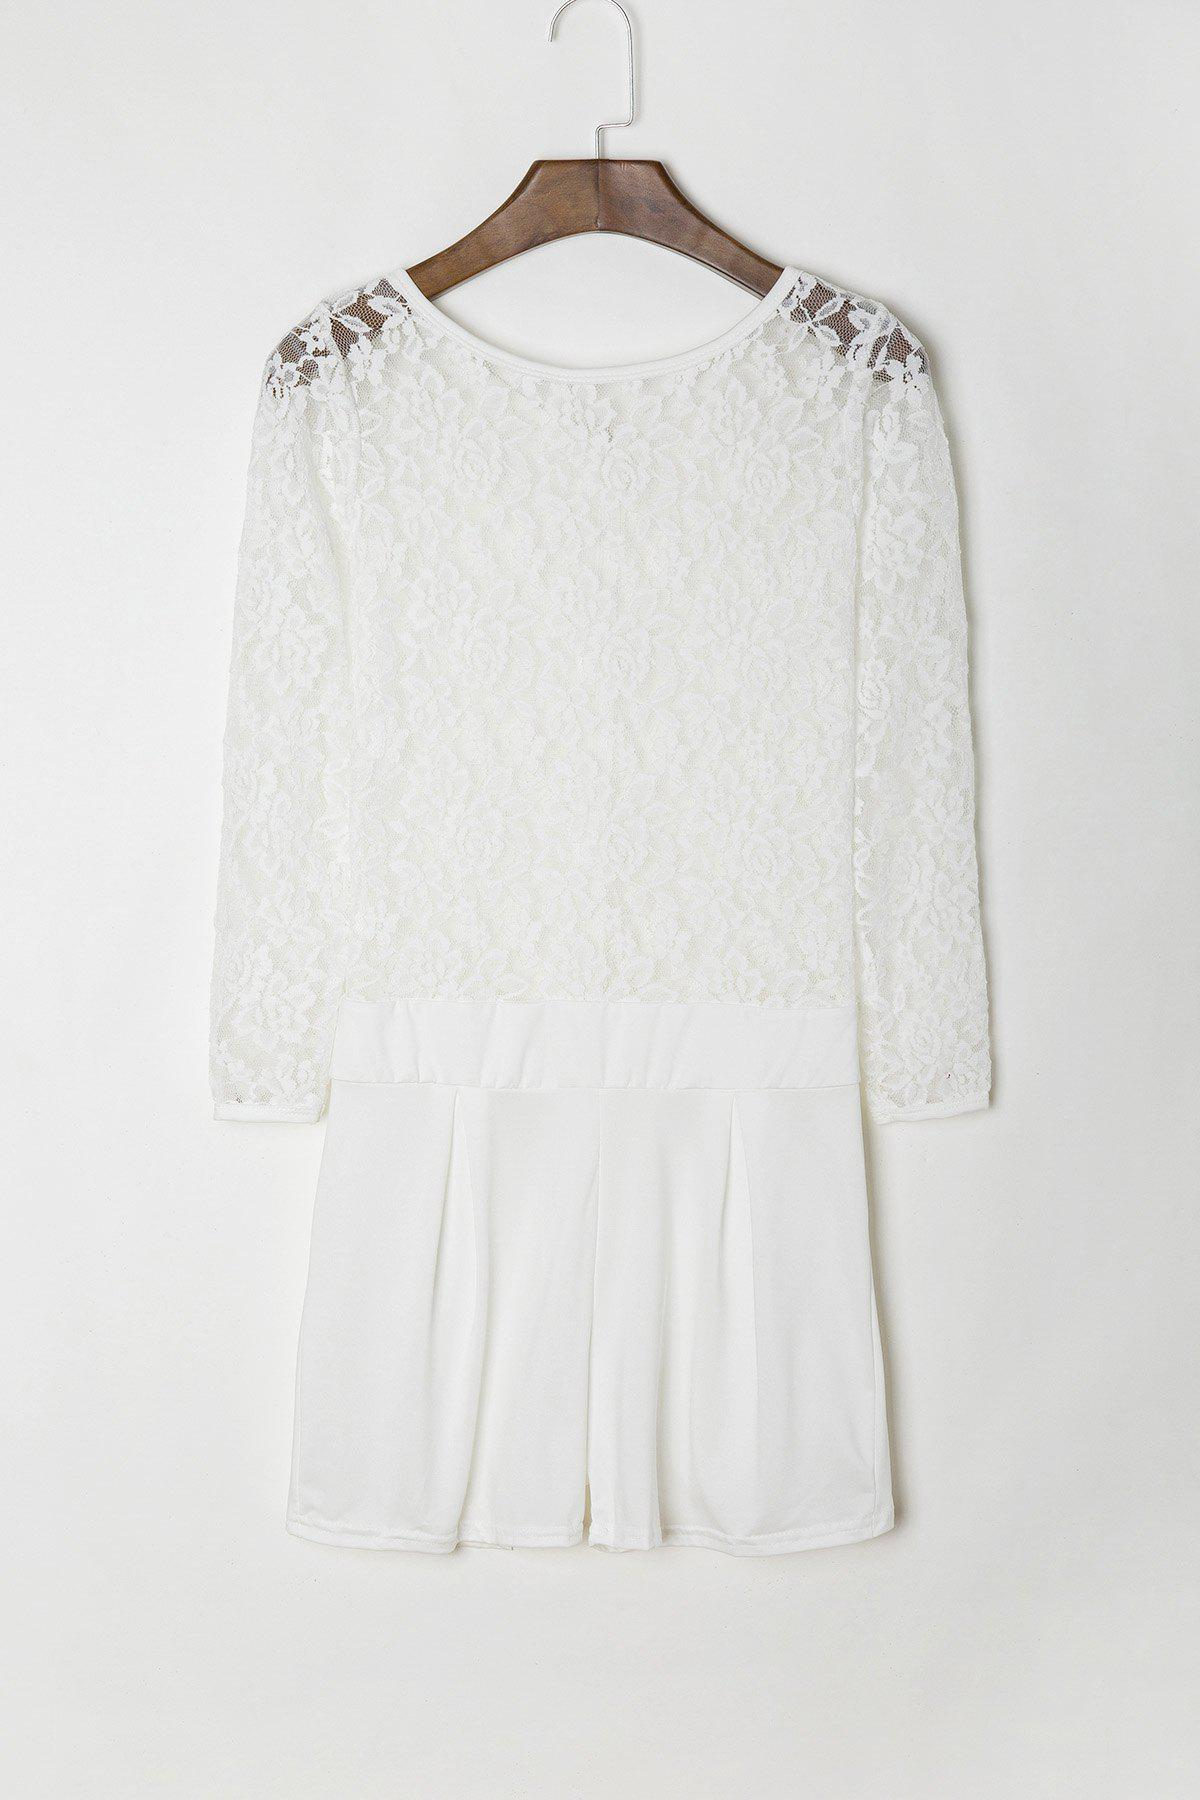 Chic Stylish Round Neck See-Through Lace Spliced Long Sleeve Romper For Women